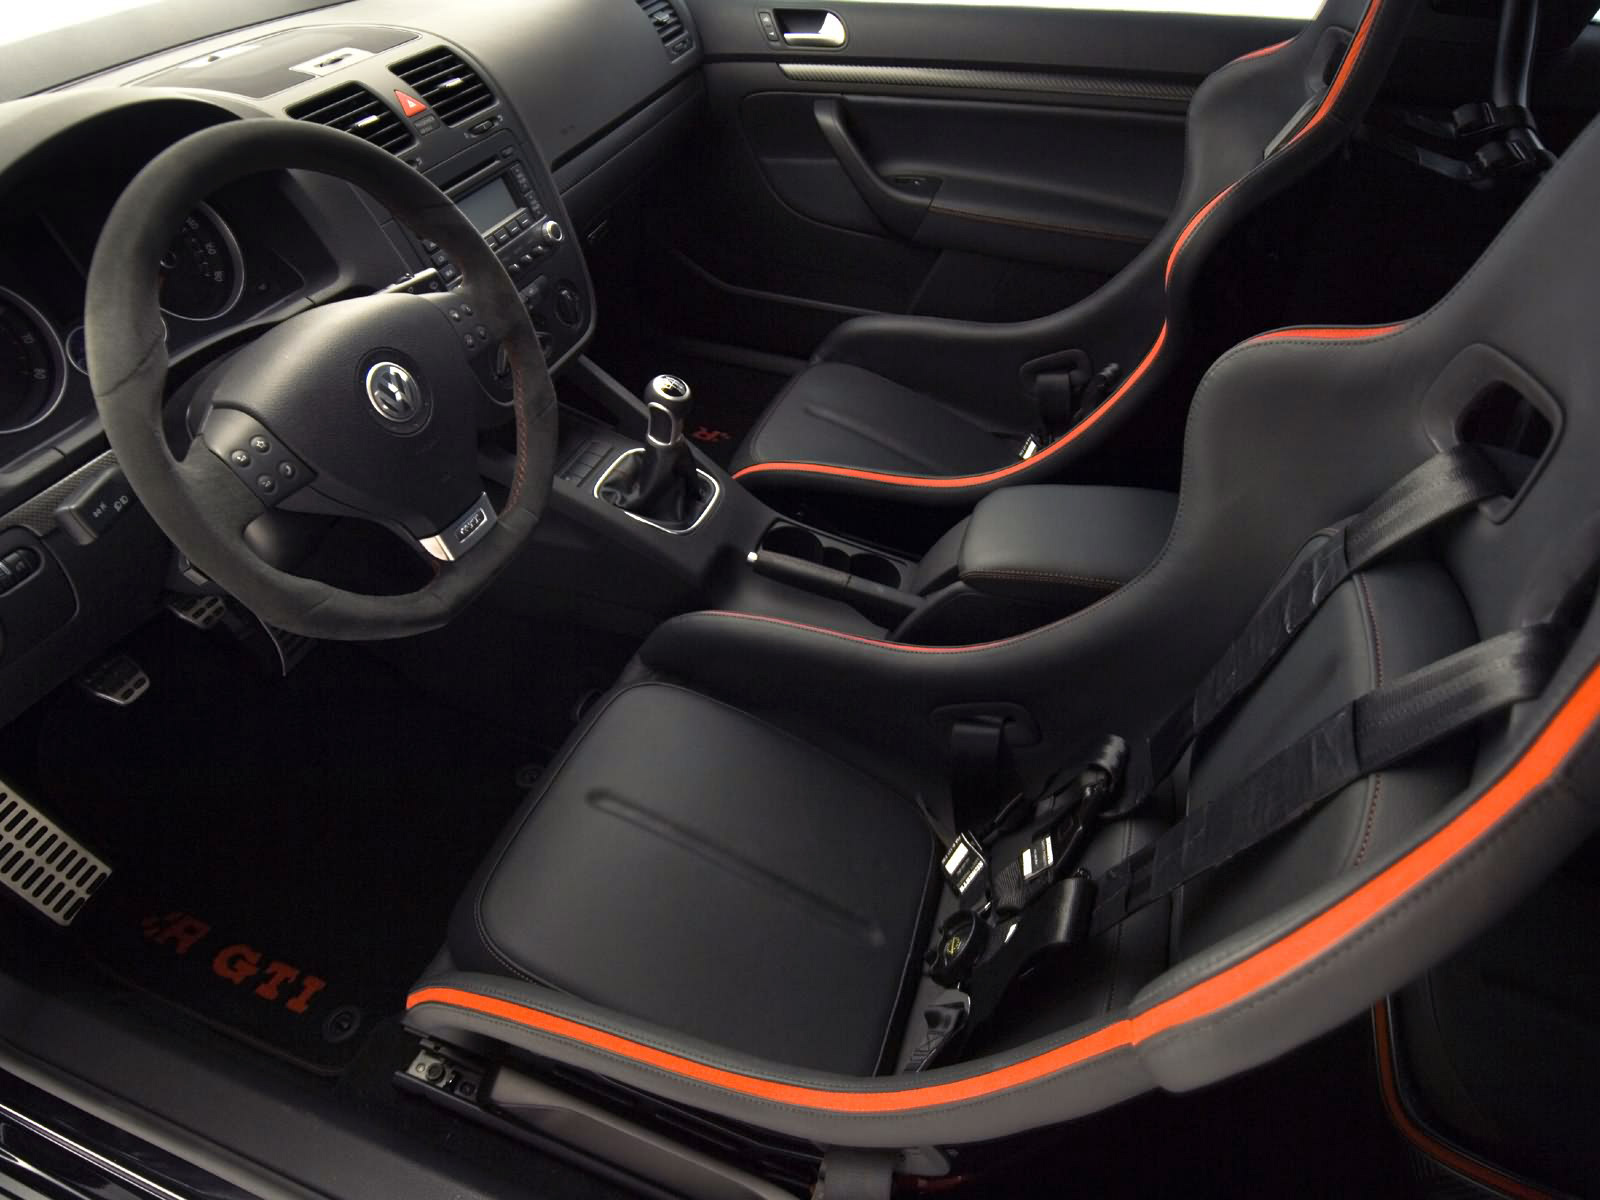 Volkswagen Golf R GTI photos  PhotoGallery with 6 pics CarsBasecom